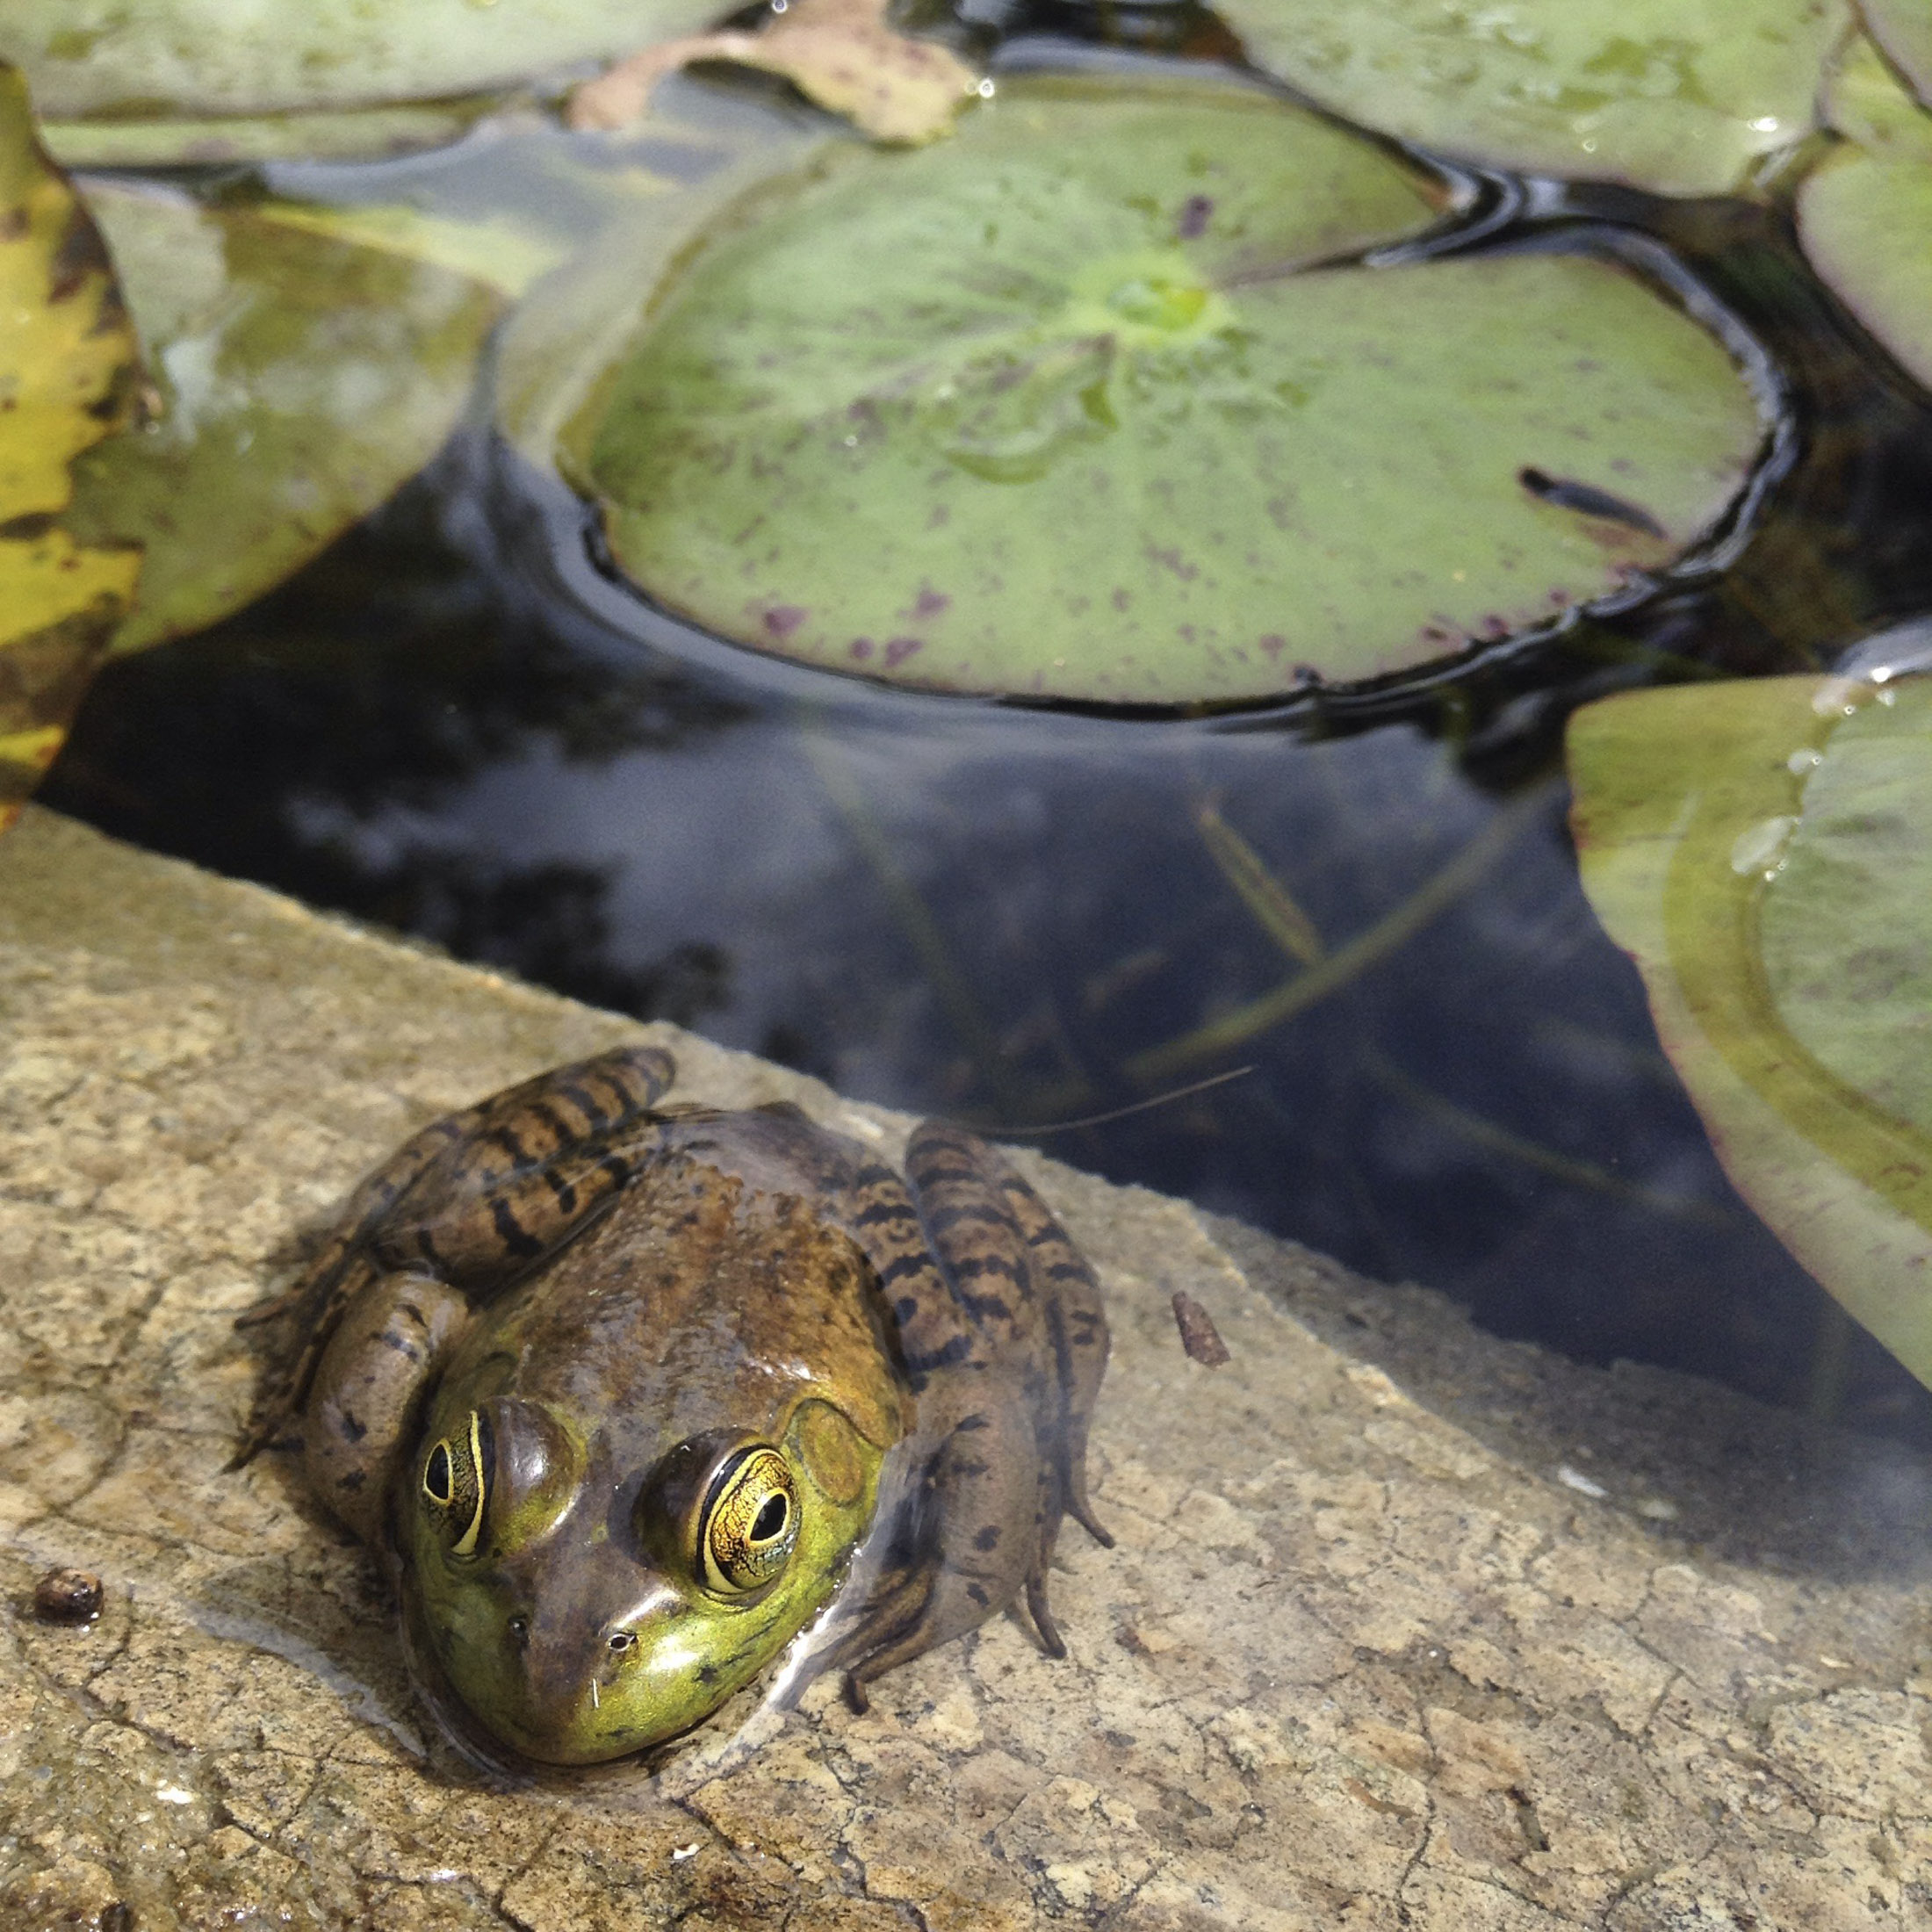 A frog on the edge of a pond.